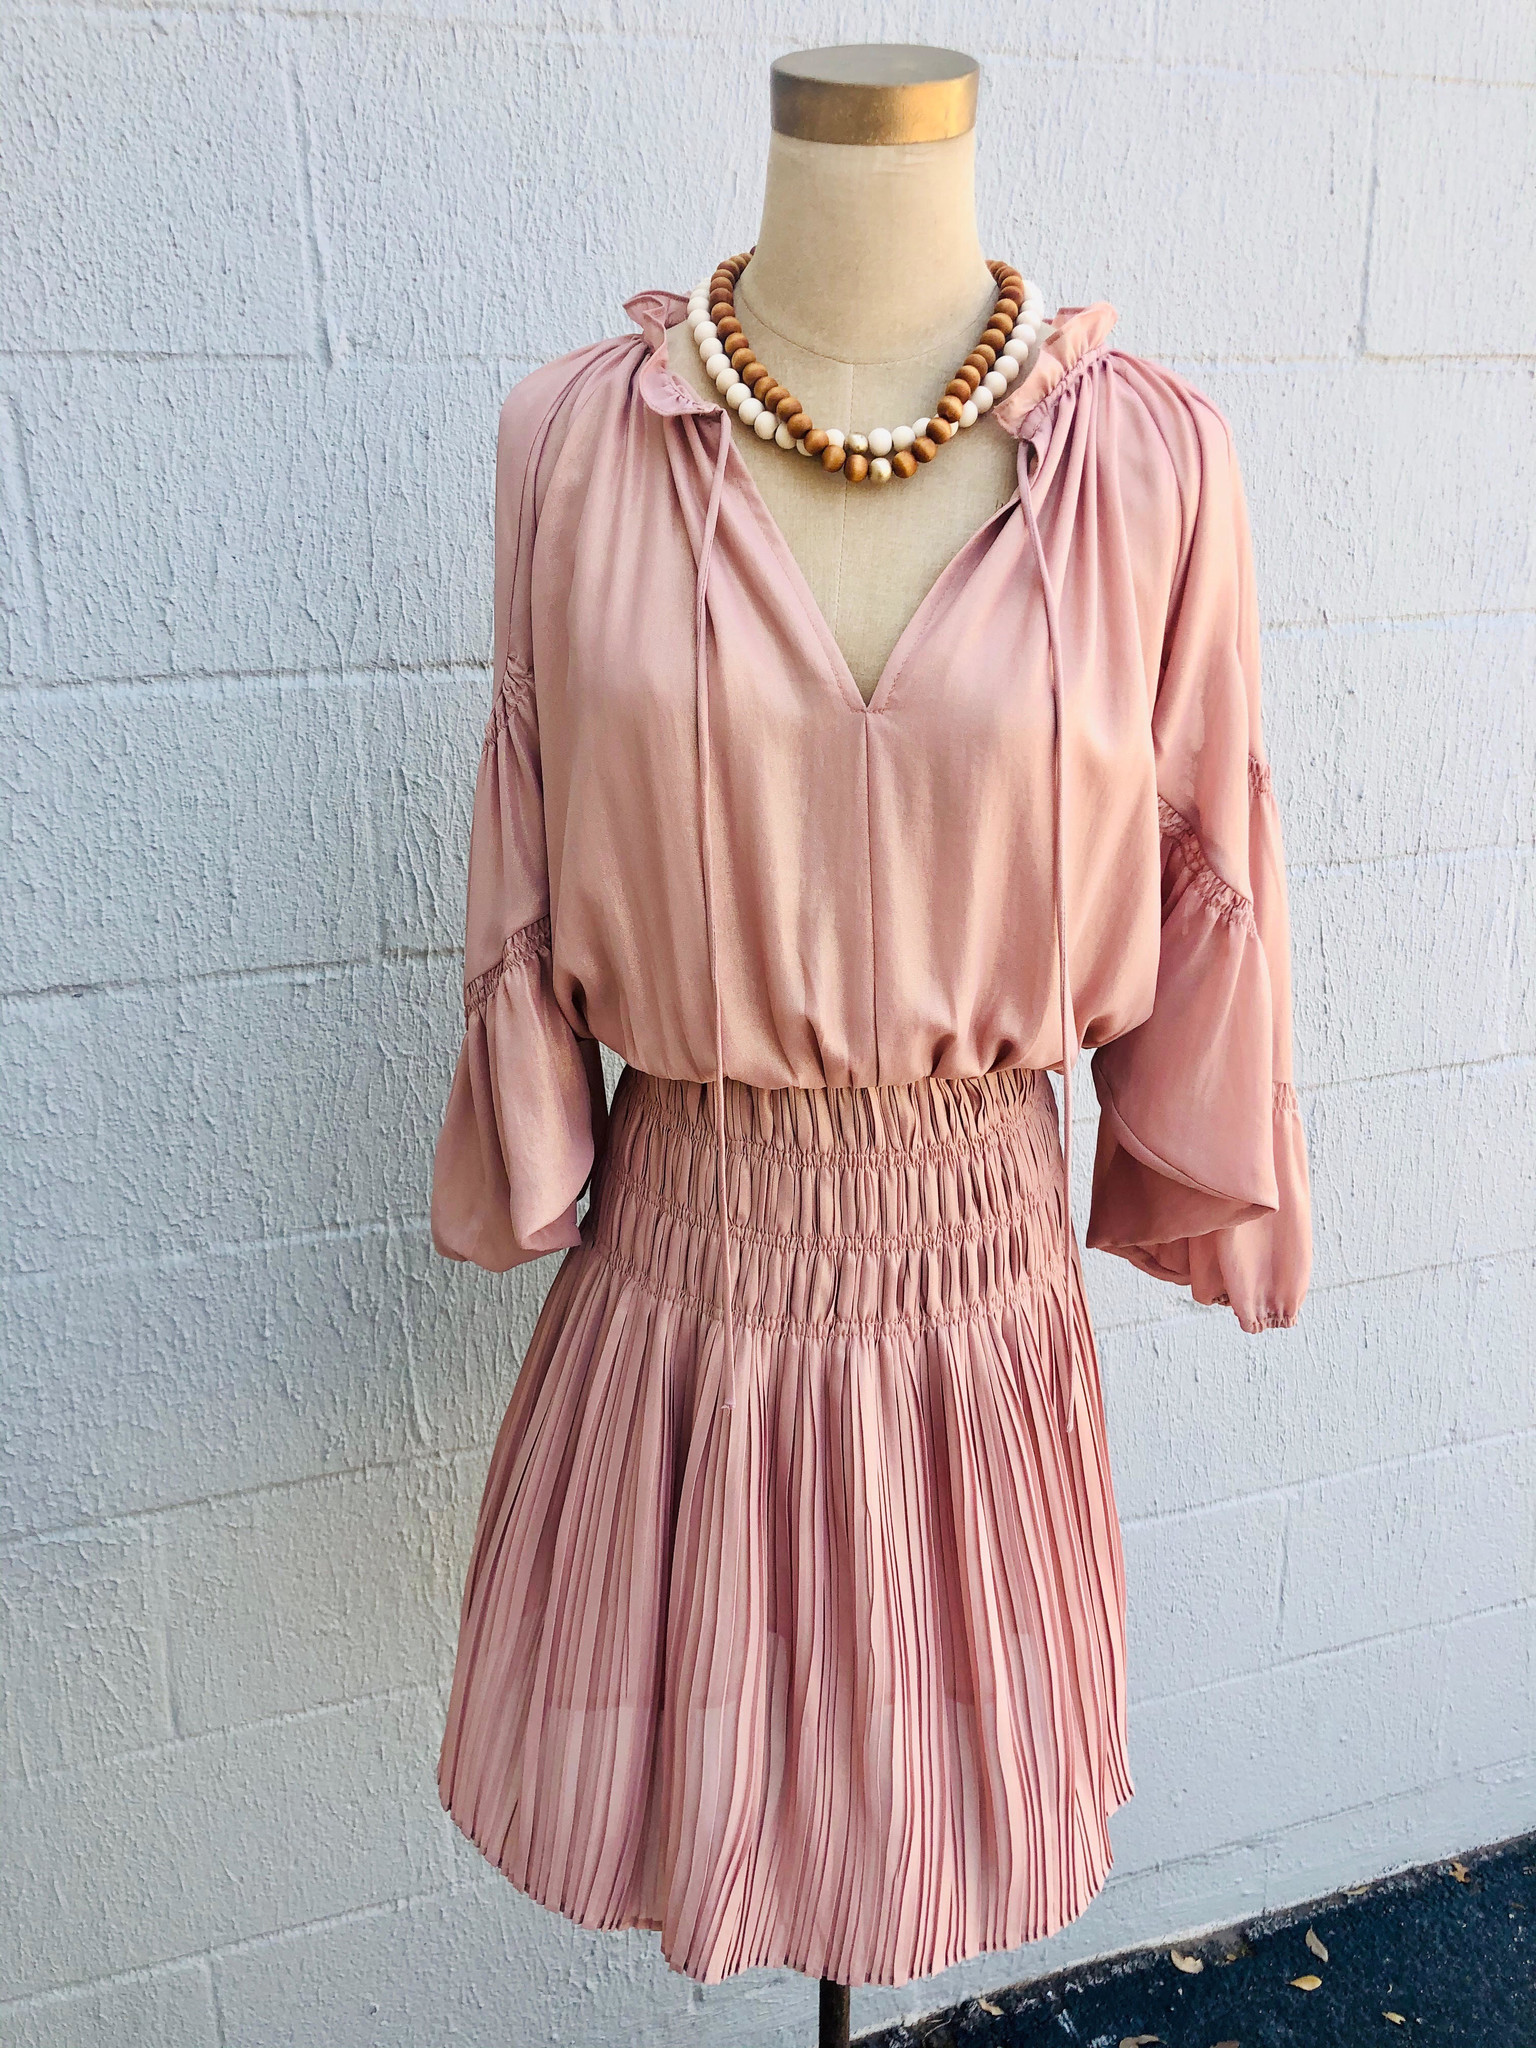 Current Air Peach Gold Smocked Detail Pleated Mini Dress